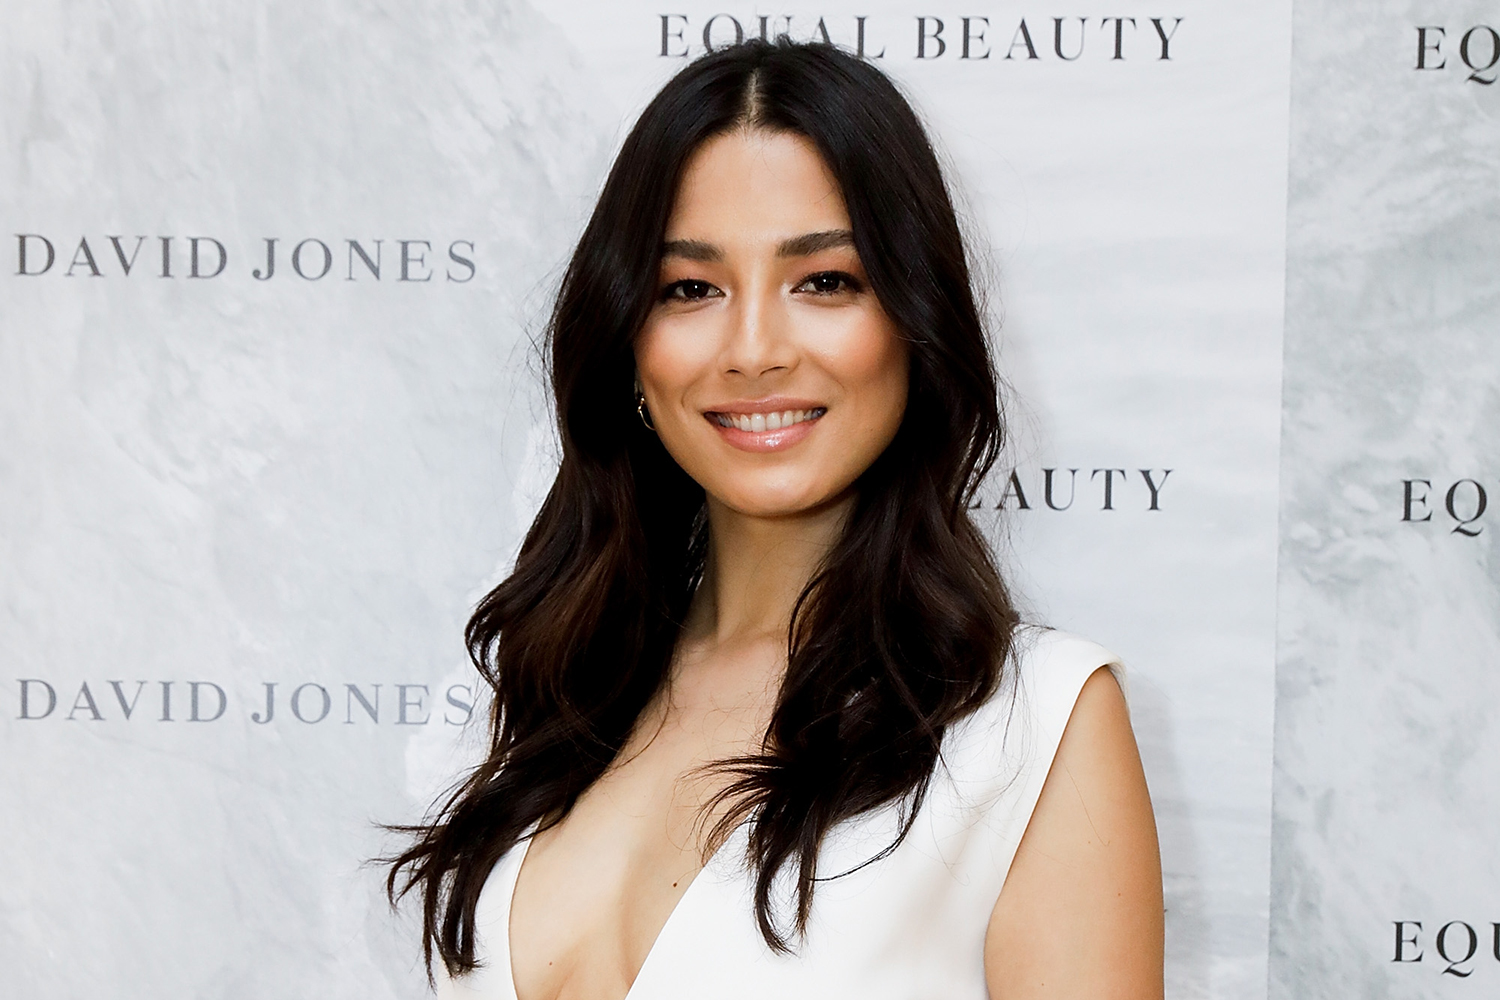 Jessica Gomes nude (91 foto and video), Tits, Bikini, Boobs, lingerie 2018